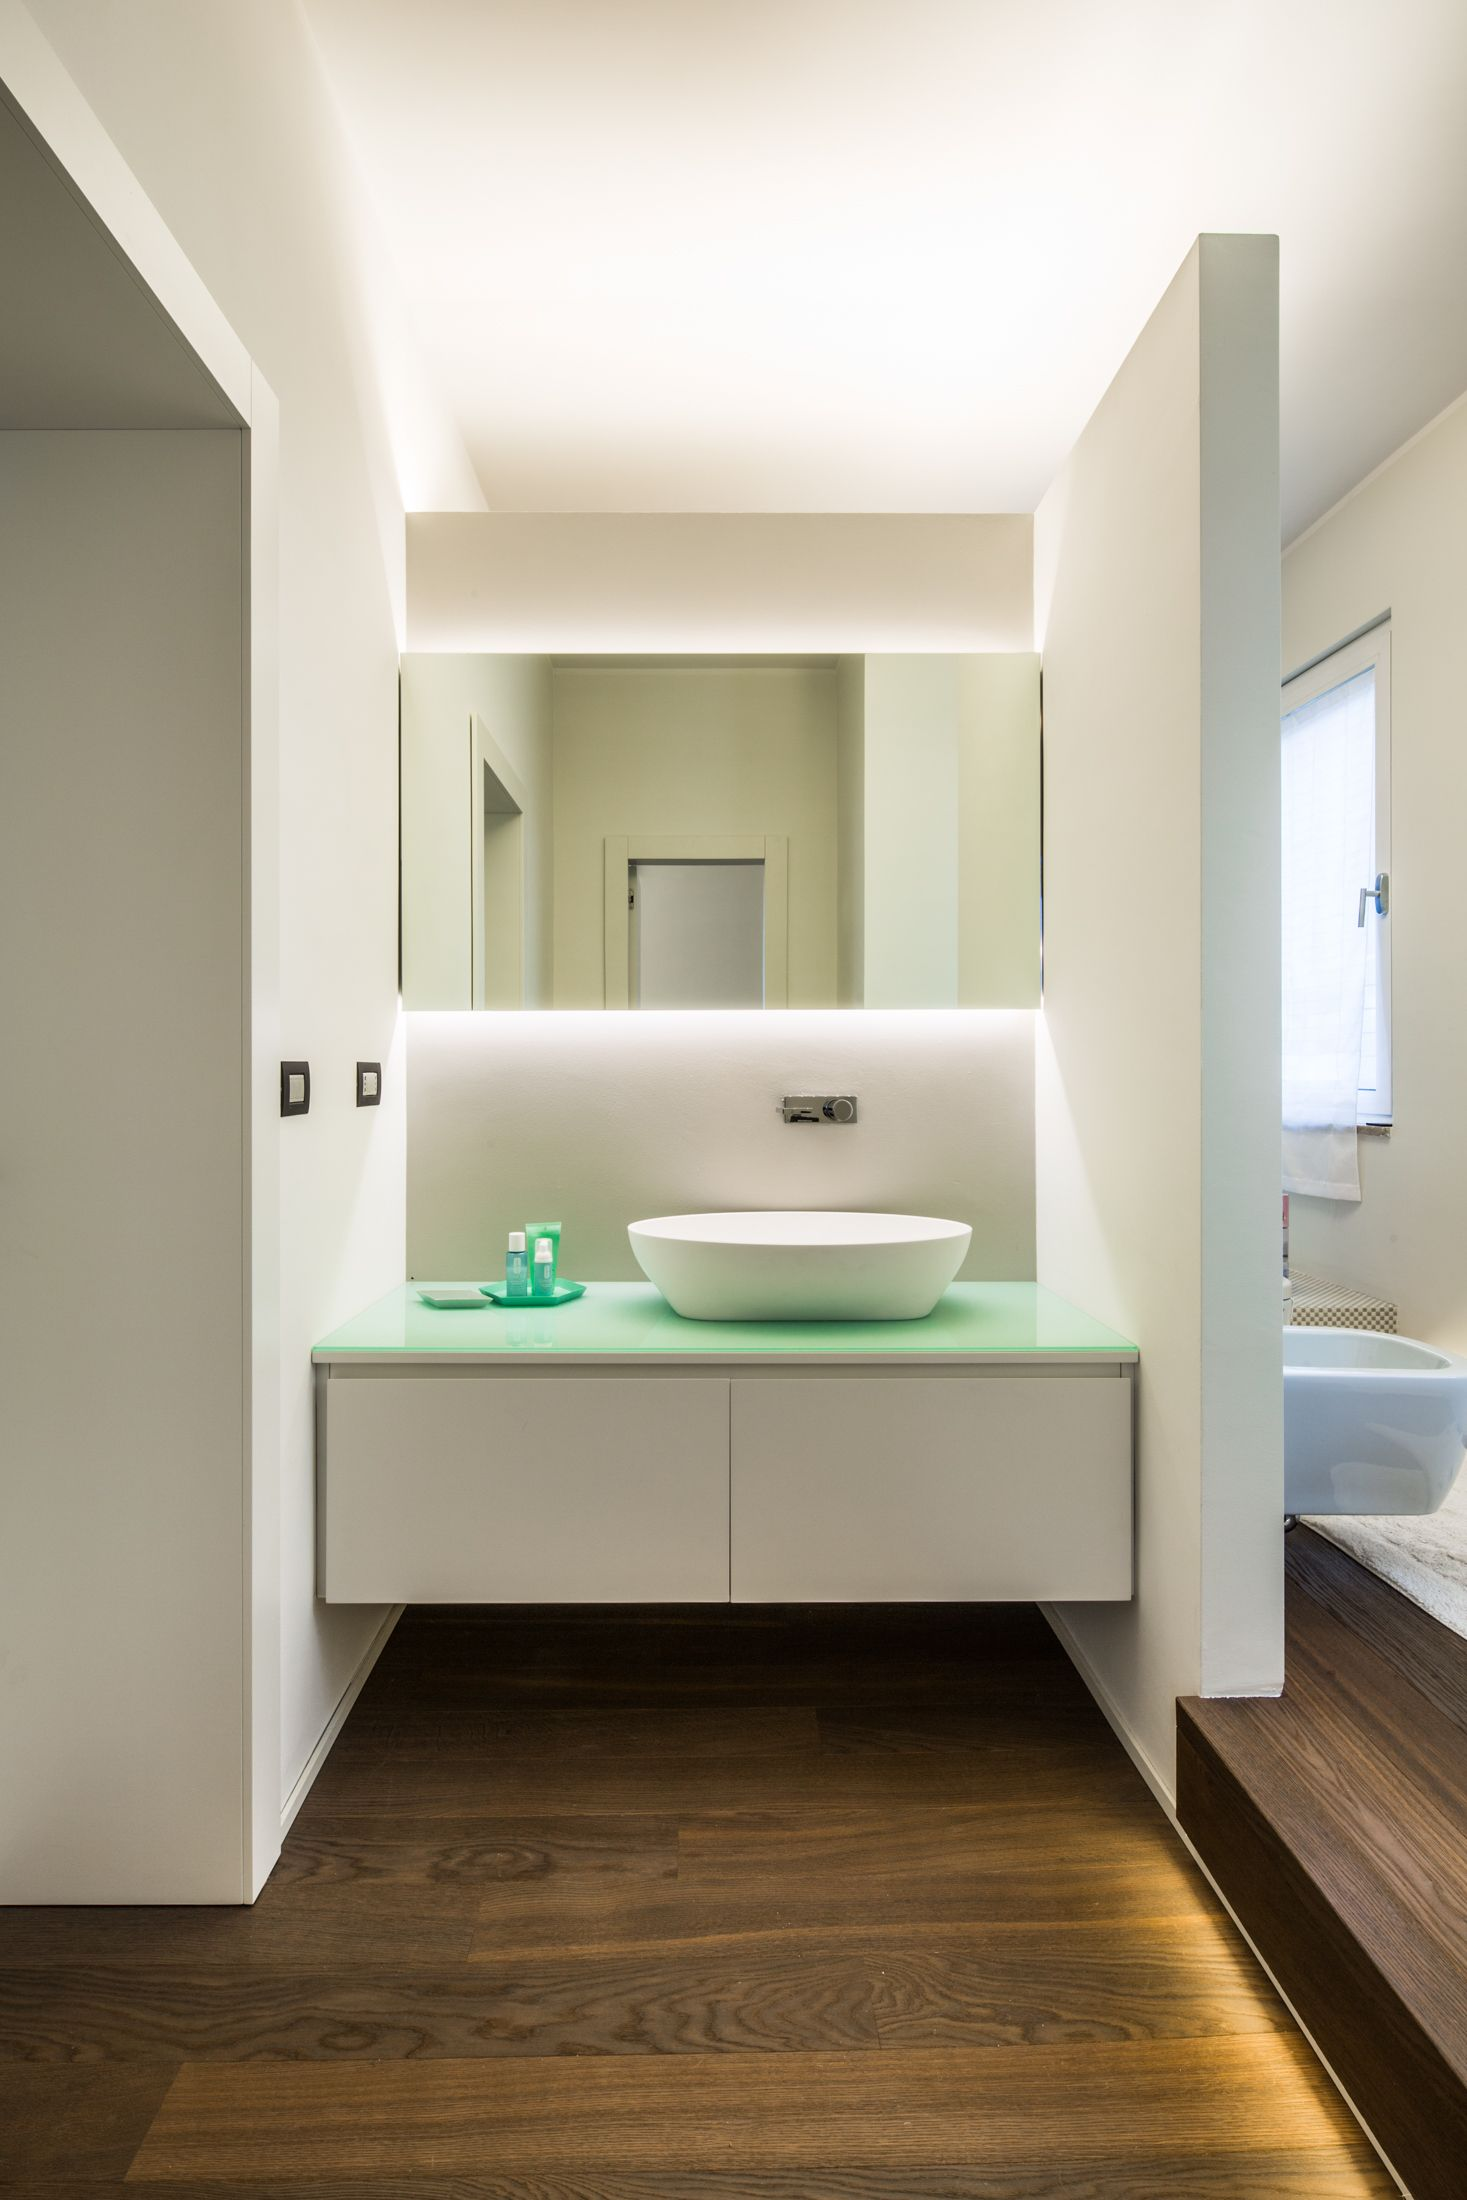 Washroom + Dressing Table In The Bathroom Apartment Renovation In